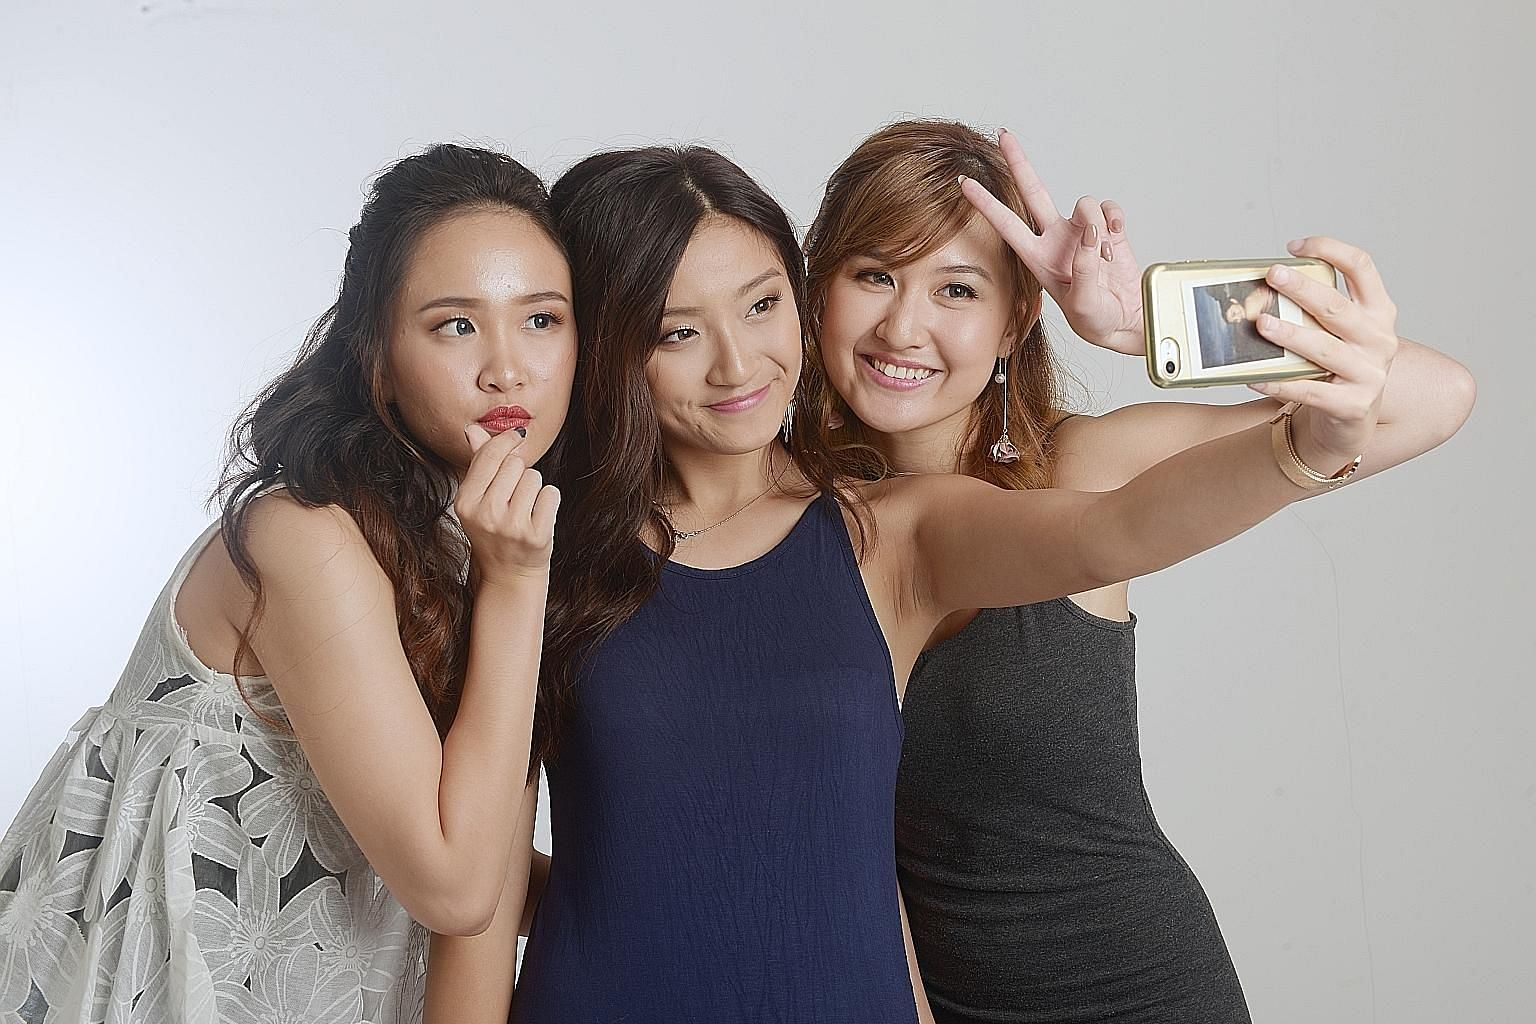 Singaporean contestants (from left) Christina Cai, Queenie Sia and Tricia Koh. The trio were among 16 out of 19 finalists who drew flak from netizens after an unofficial photo of them was posted online. Some have questioned if organiser REM Singapore